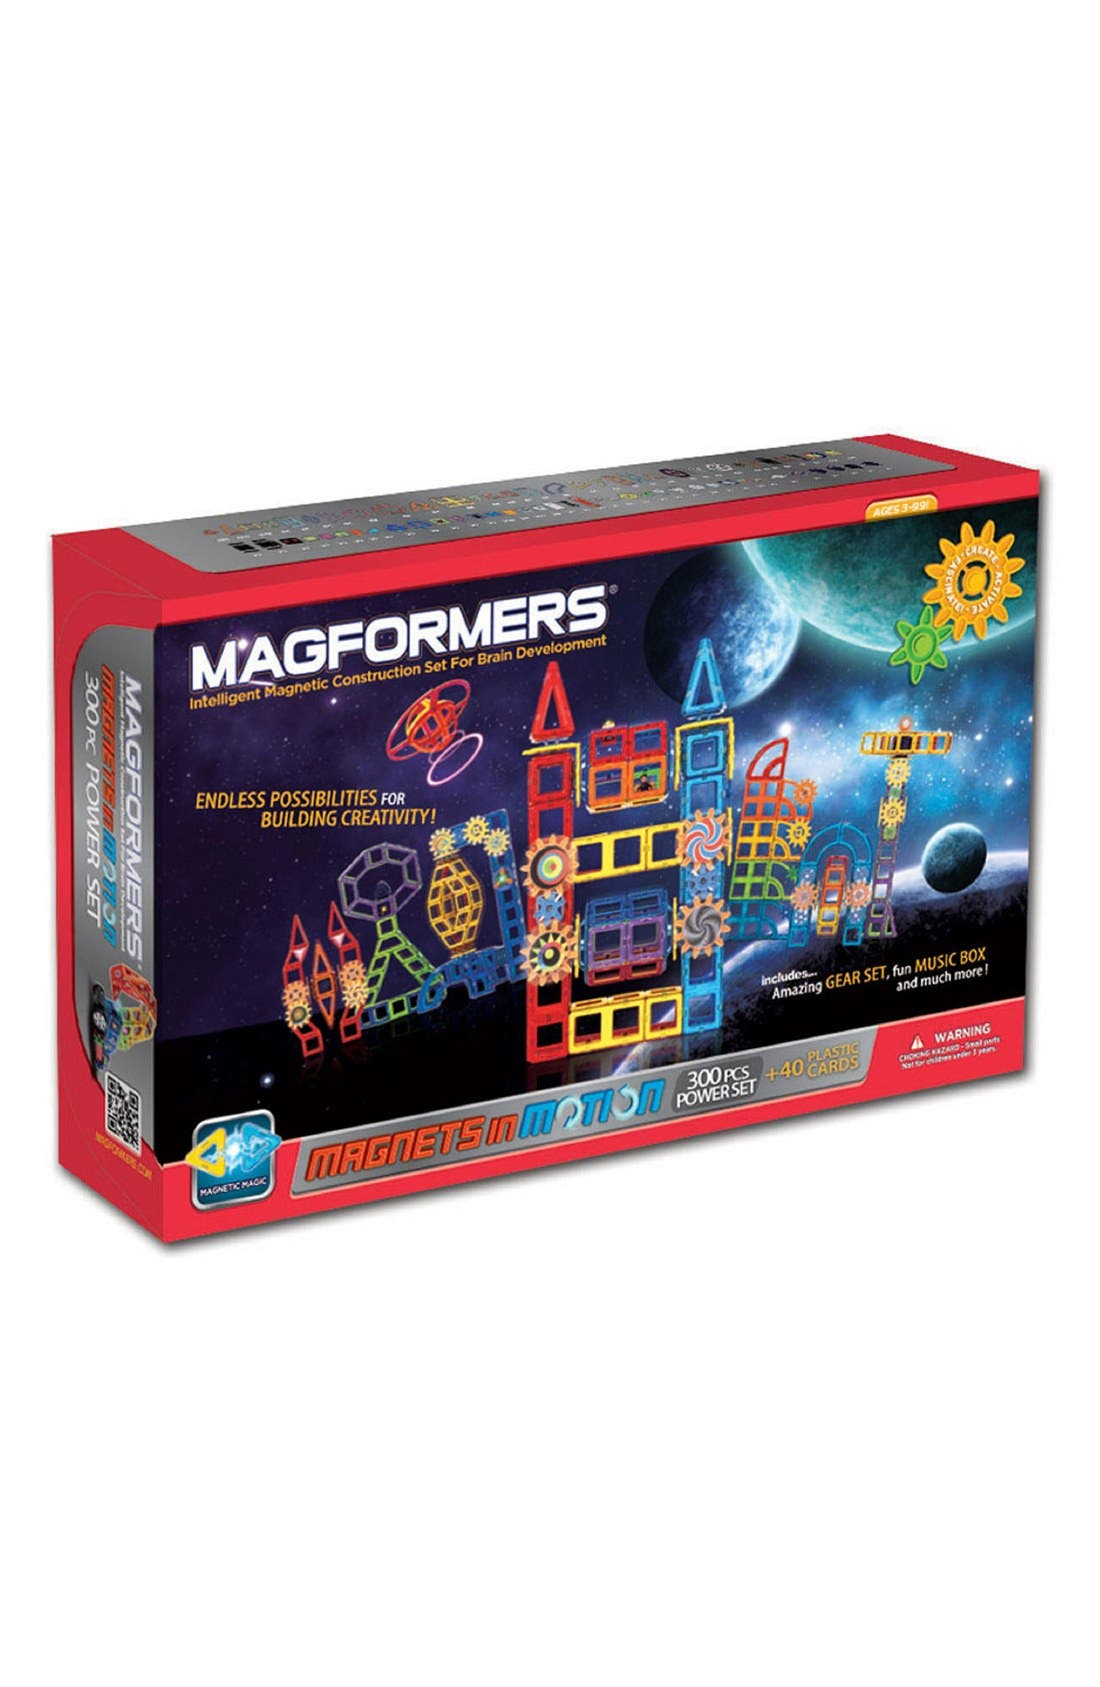 MAGFORMERS 'Magnets in Motion' Power Set